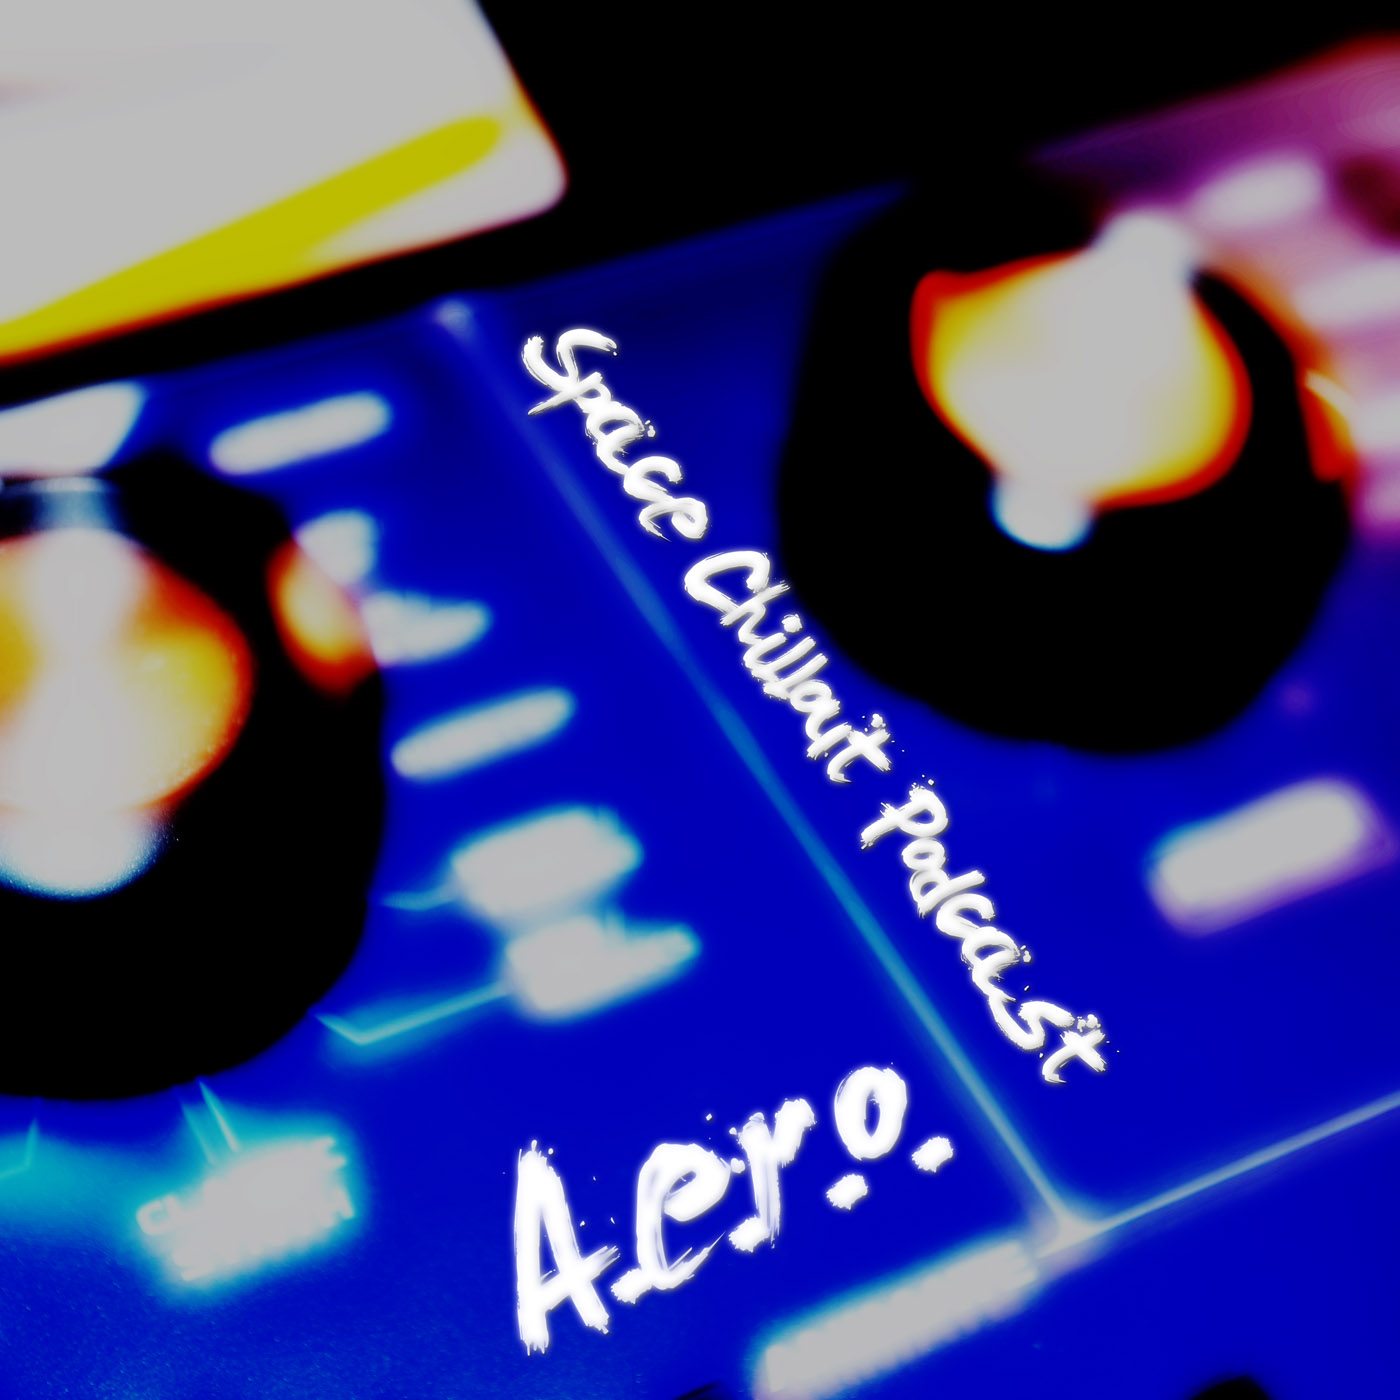 A.e.r.o. - Space Chillout Podcast